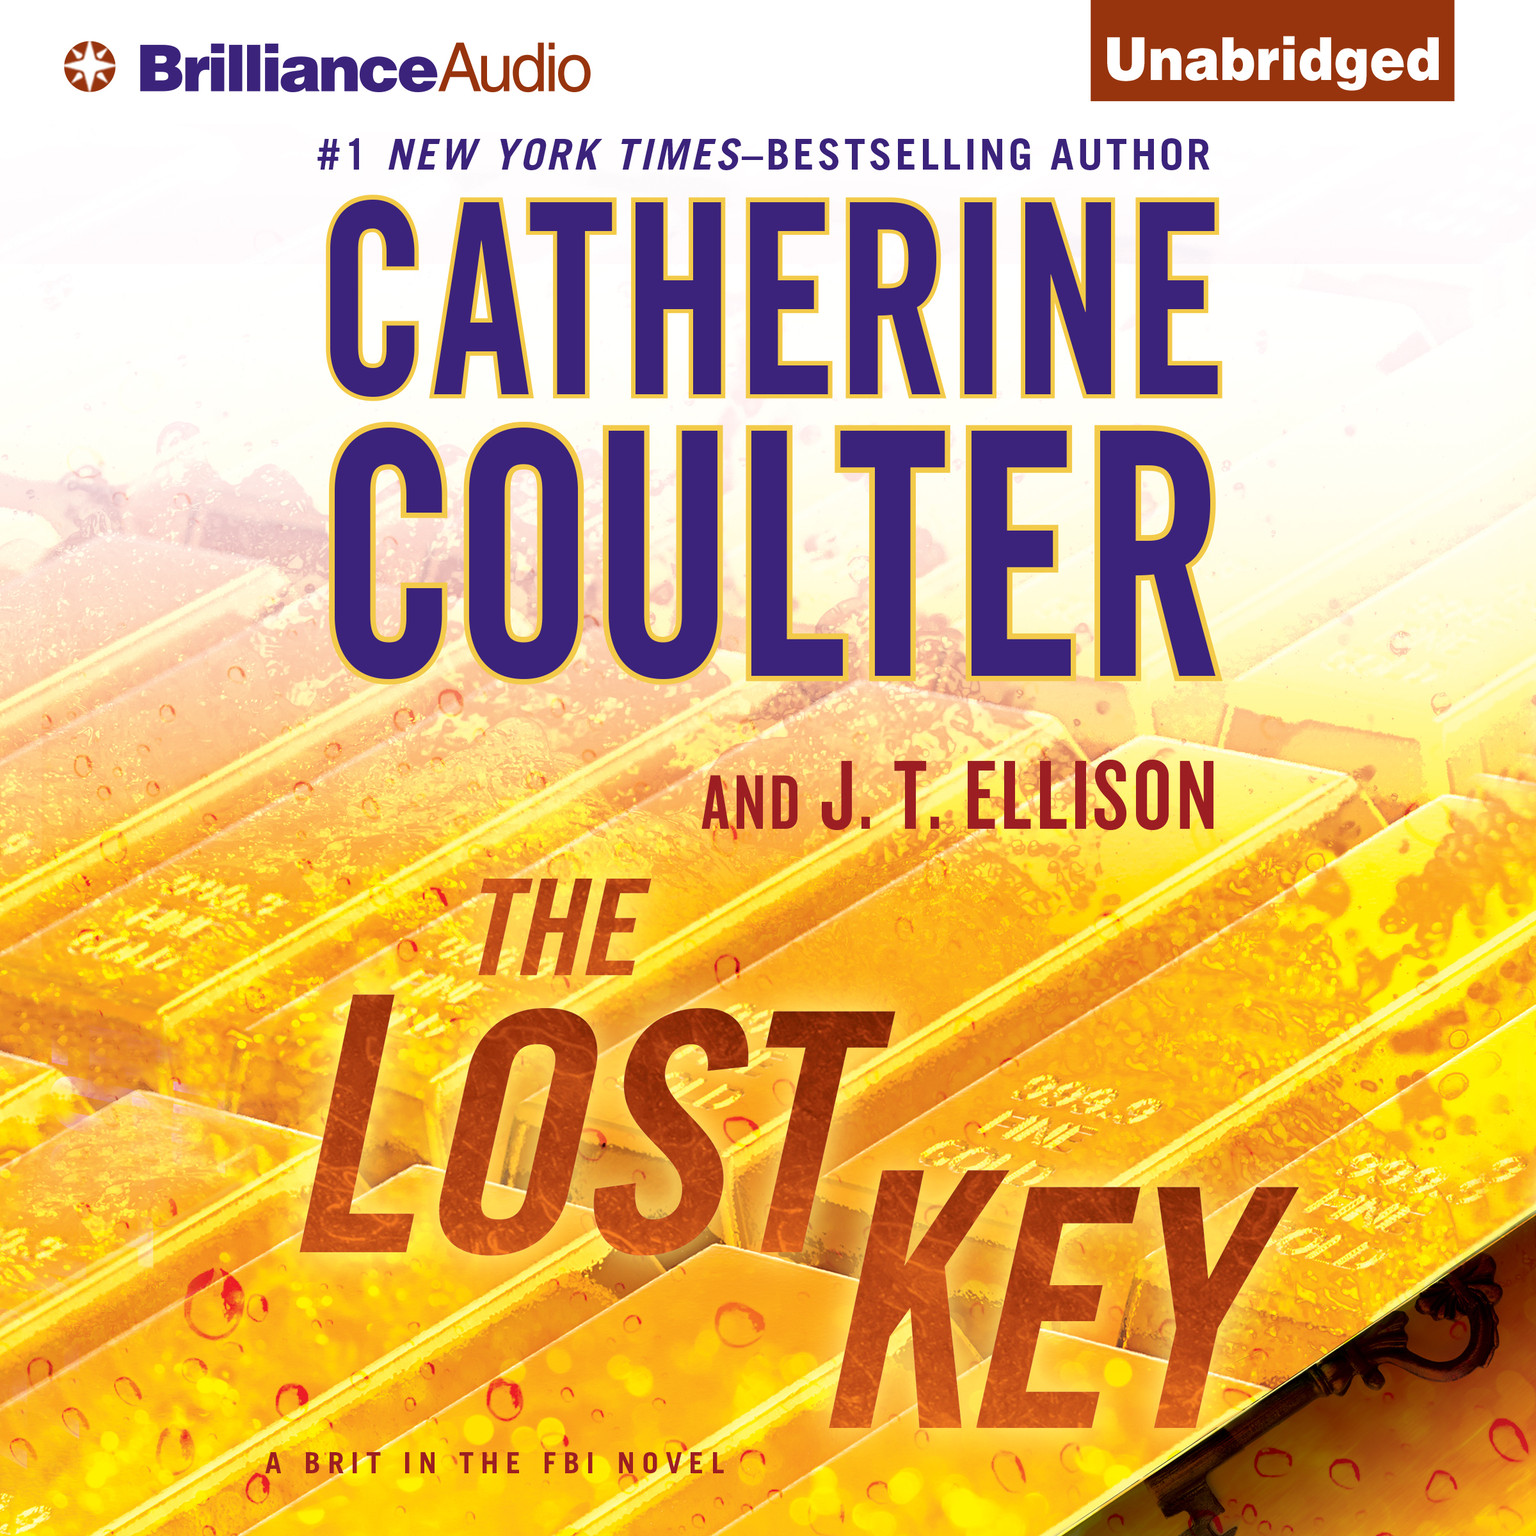 Printable The Lost Key: A Brit in the FBI Novel Audiobook Cover Art